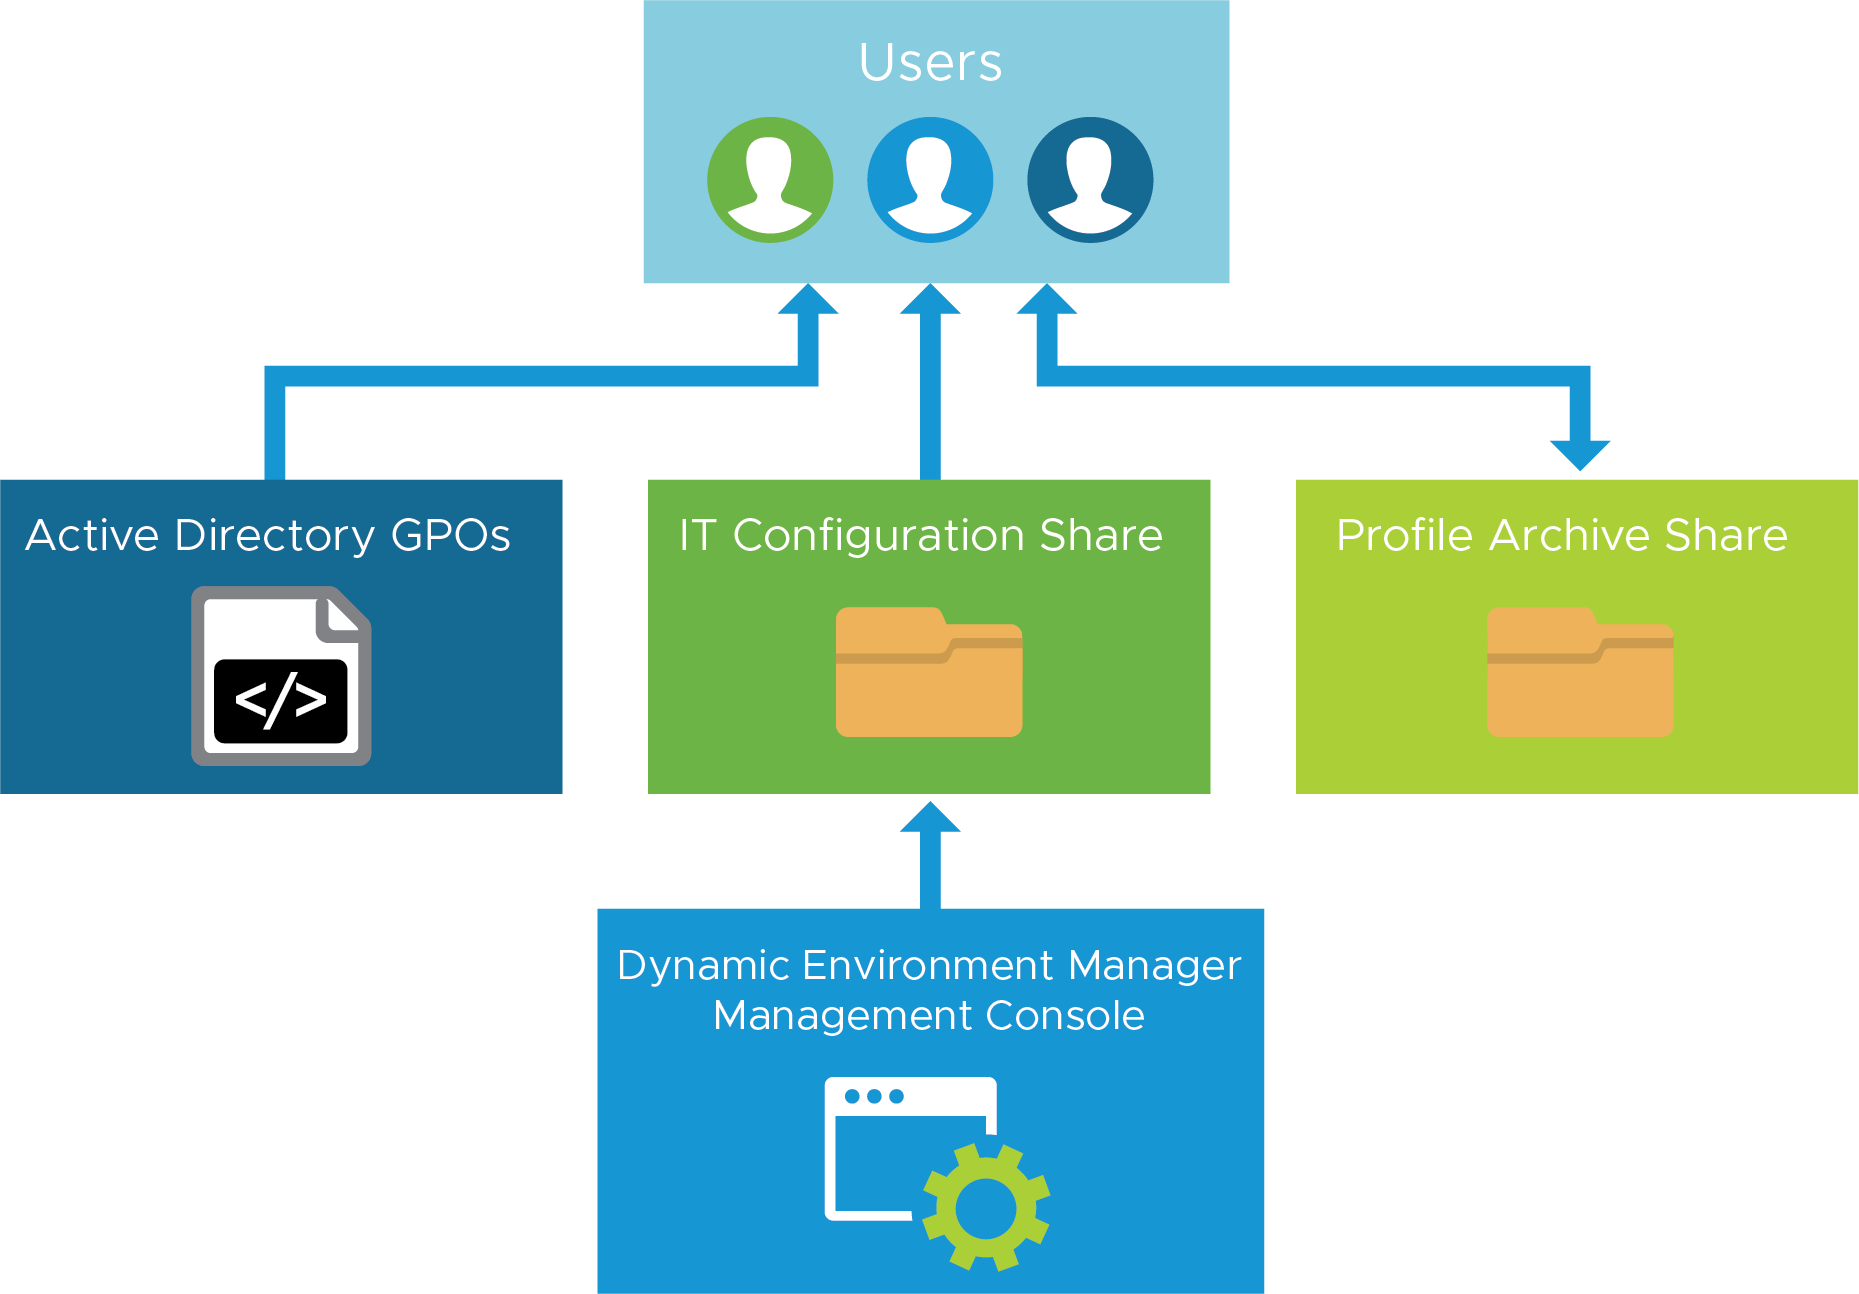 Dynamic Environment Manager Infrastructure